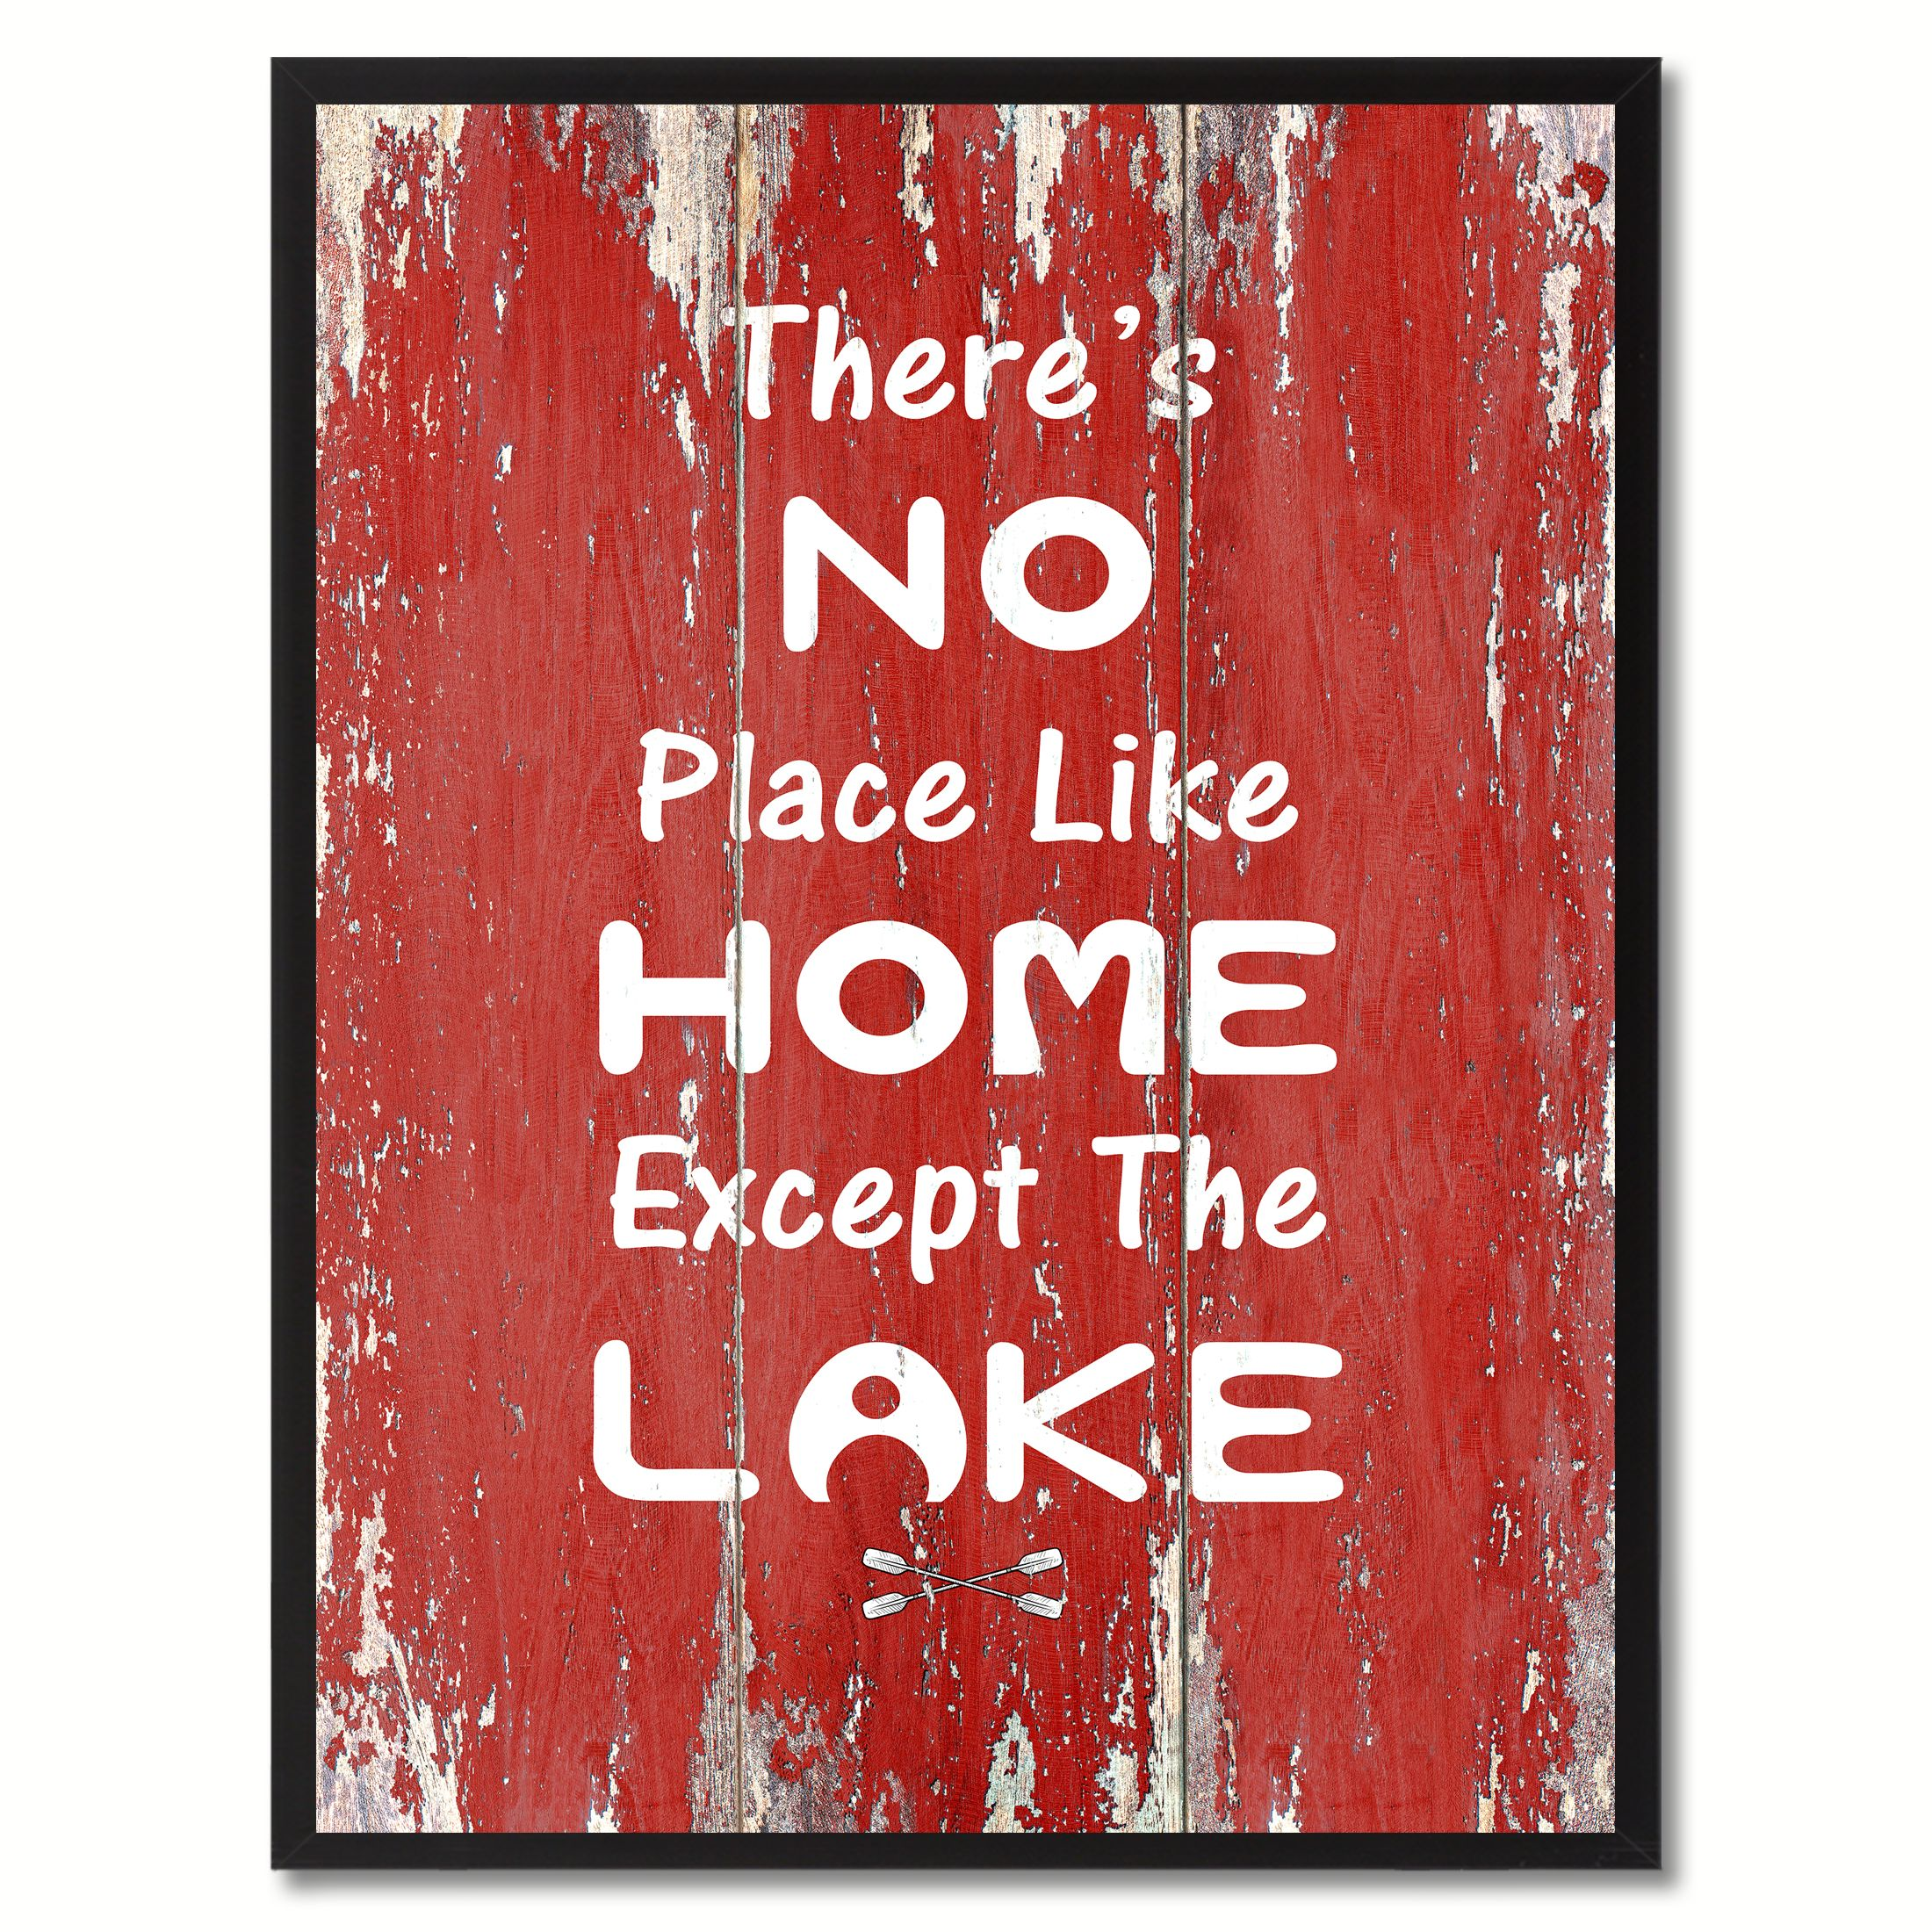 12 Home Decor Gift Ideas From Walmart: There's No Place Like Home Except The Lake Quote Saying